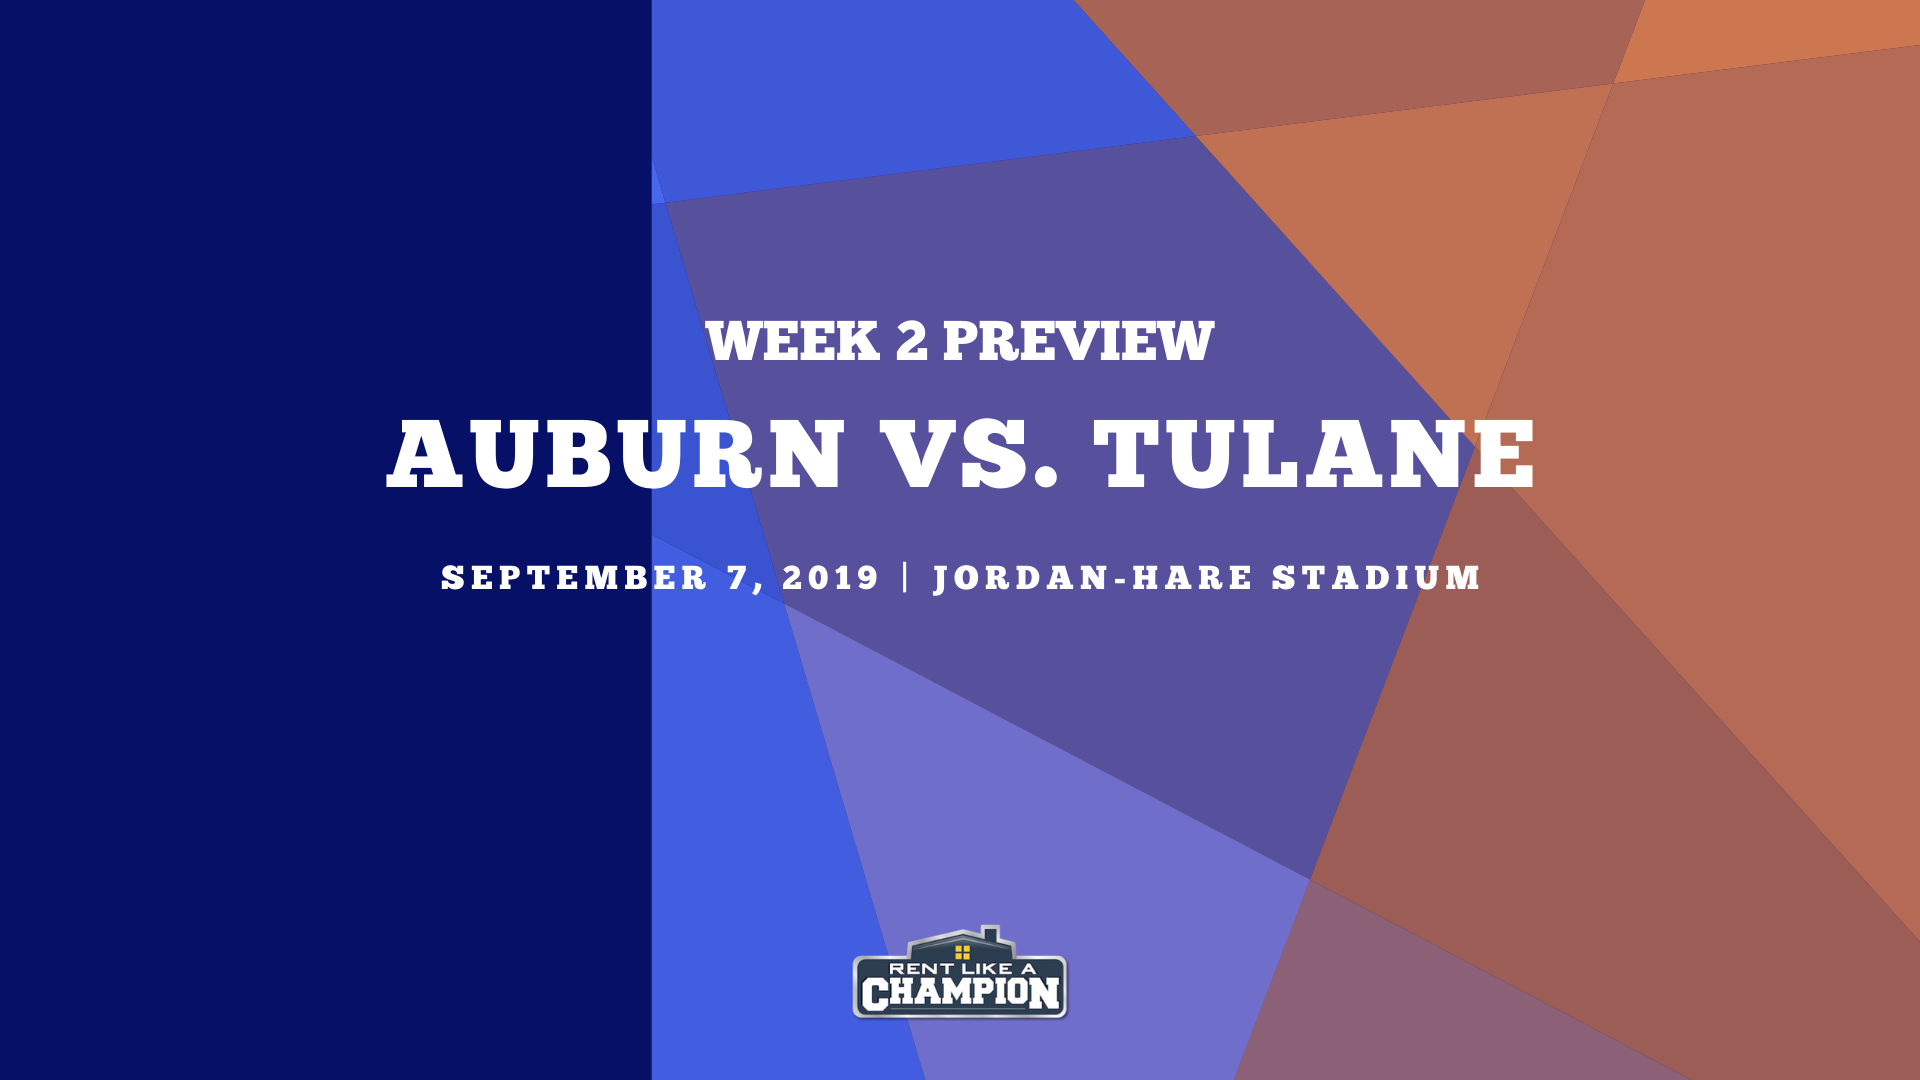 Auburn Game Preview Template (1)